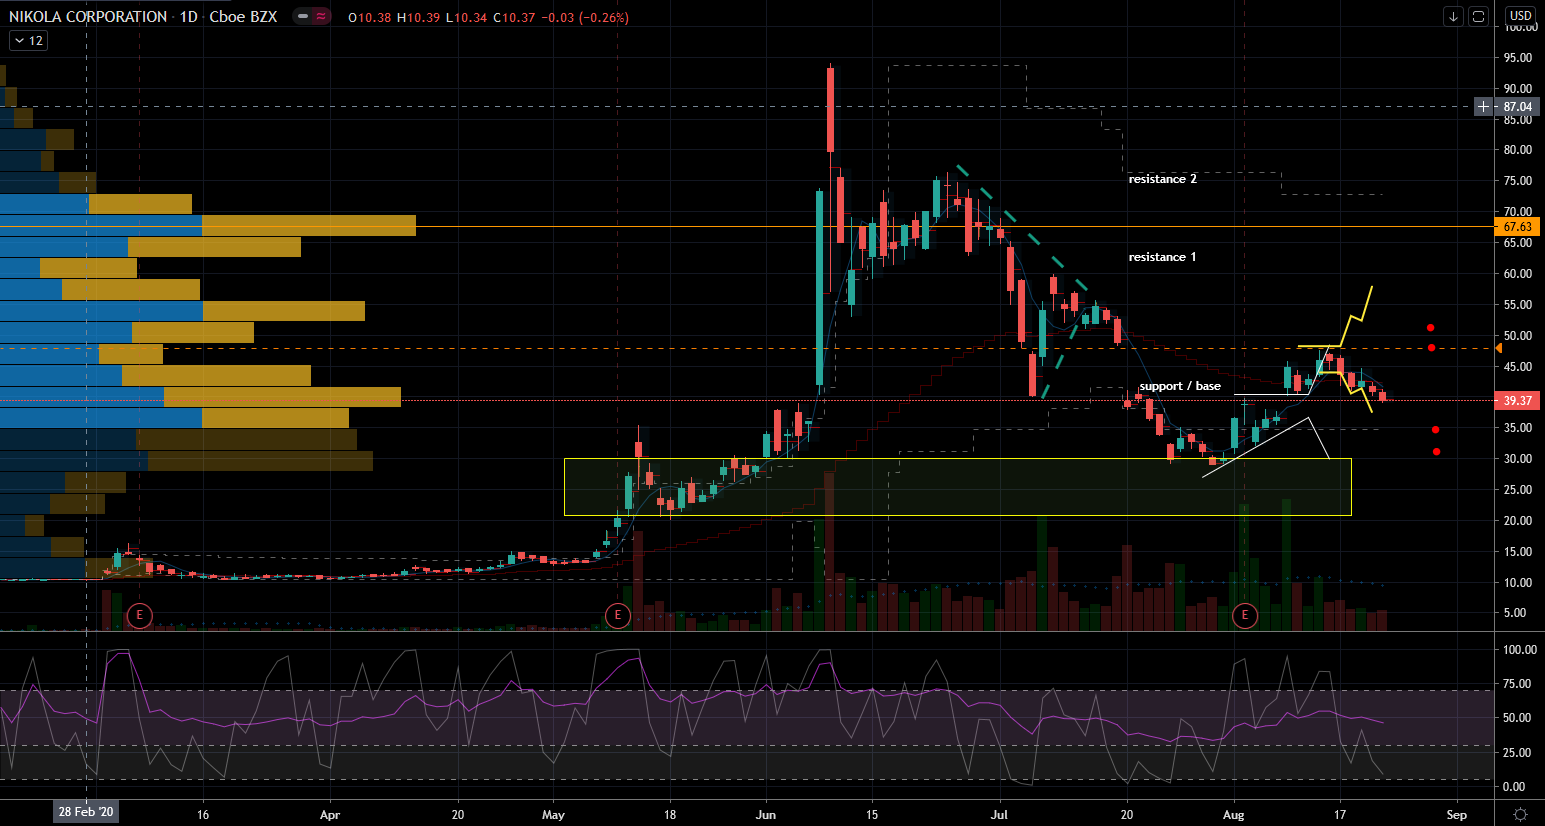 Electric Car Stocks: Nikola (NKLA) Chart Showing Support Below and Trigger Above